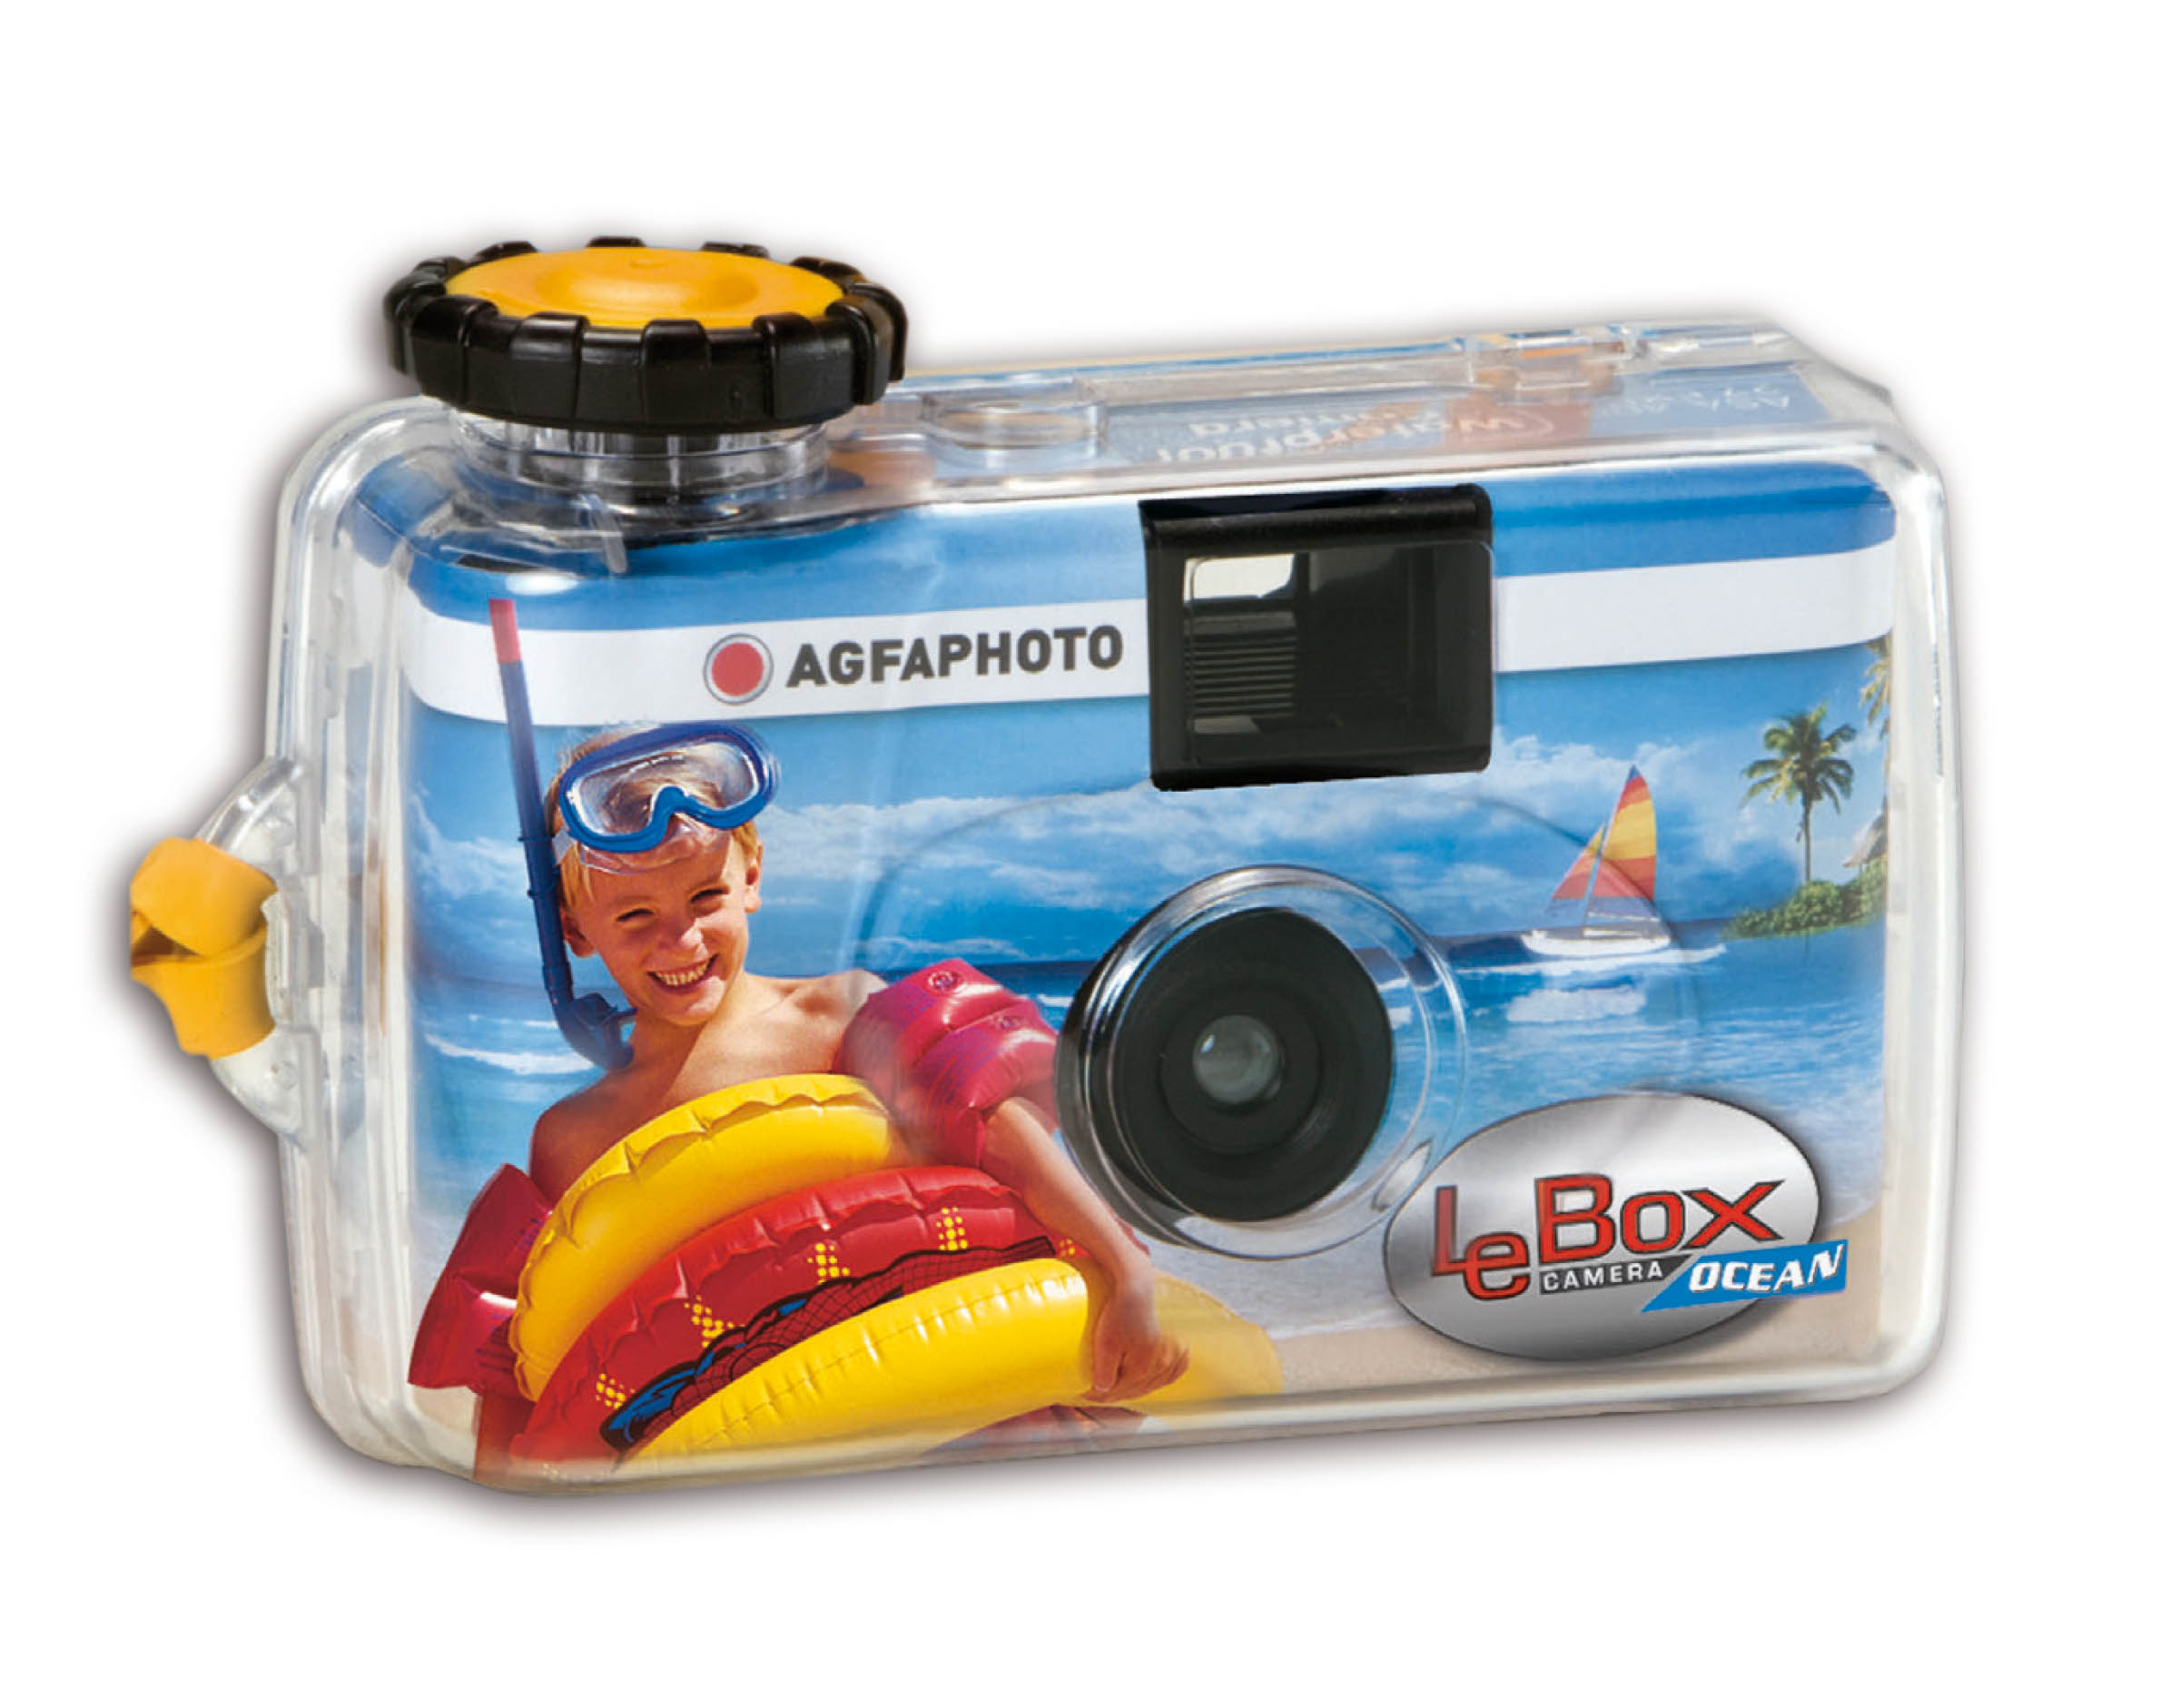 Item Agfa Lebox Ocean 400/27 analog camera underwater